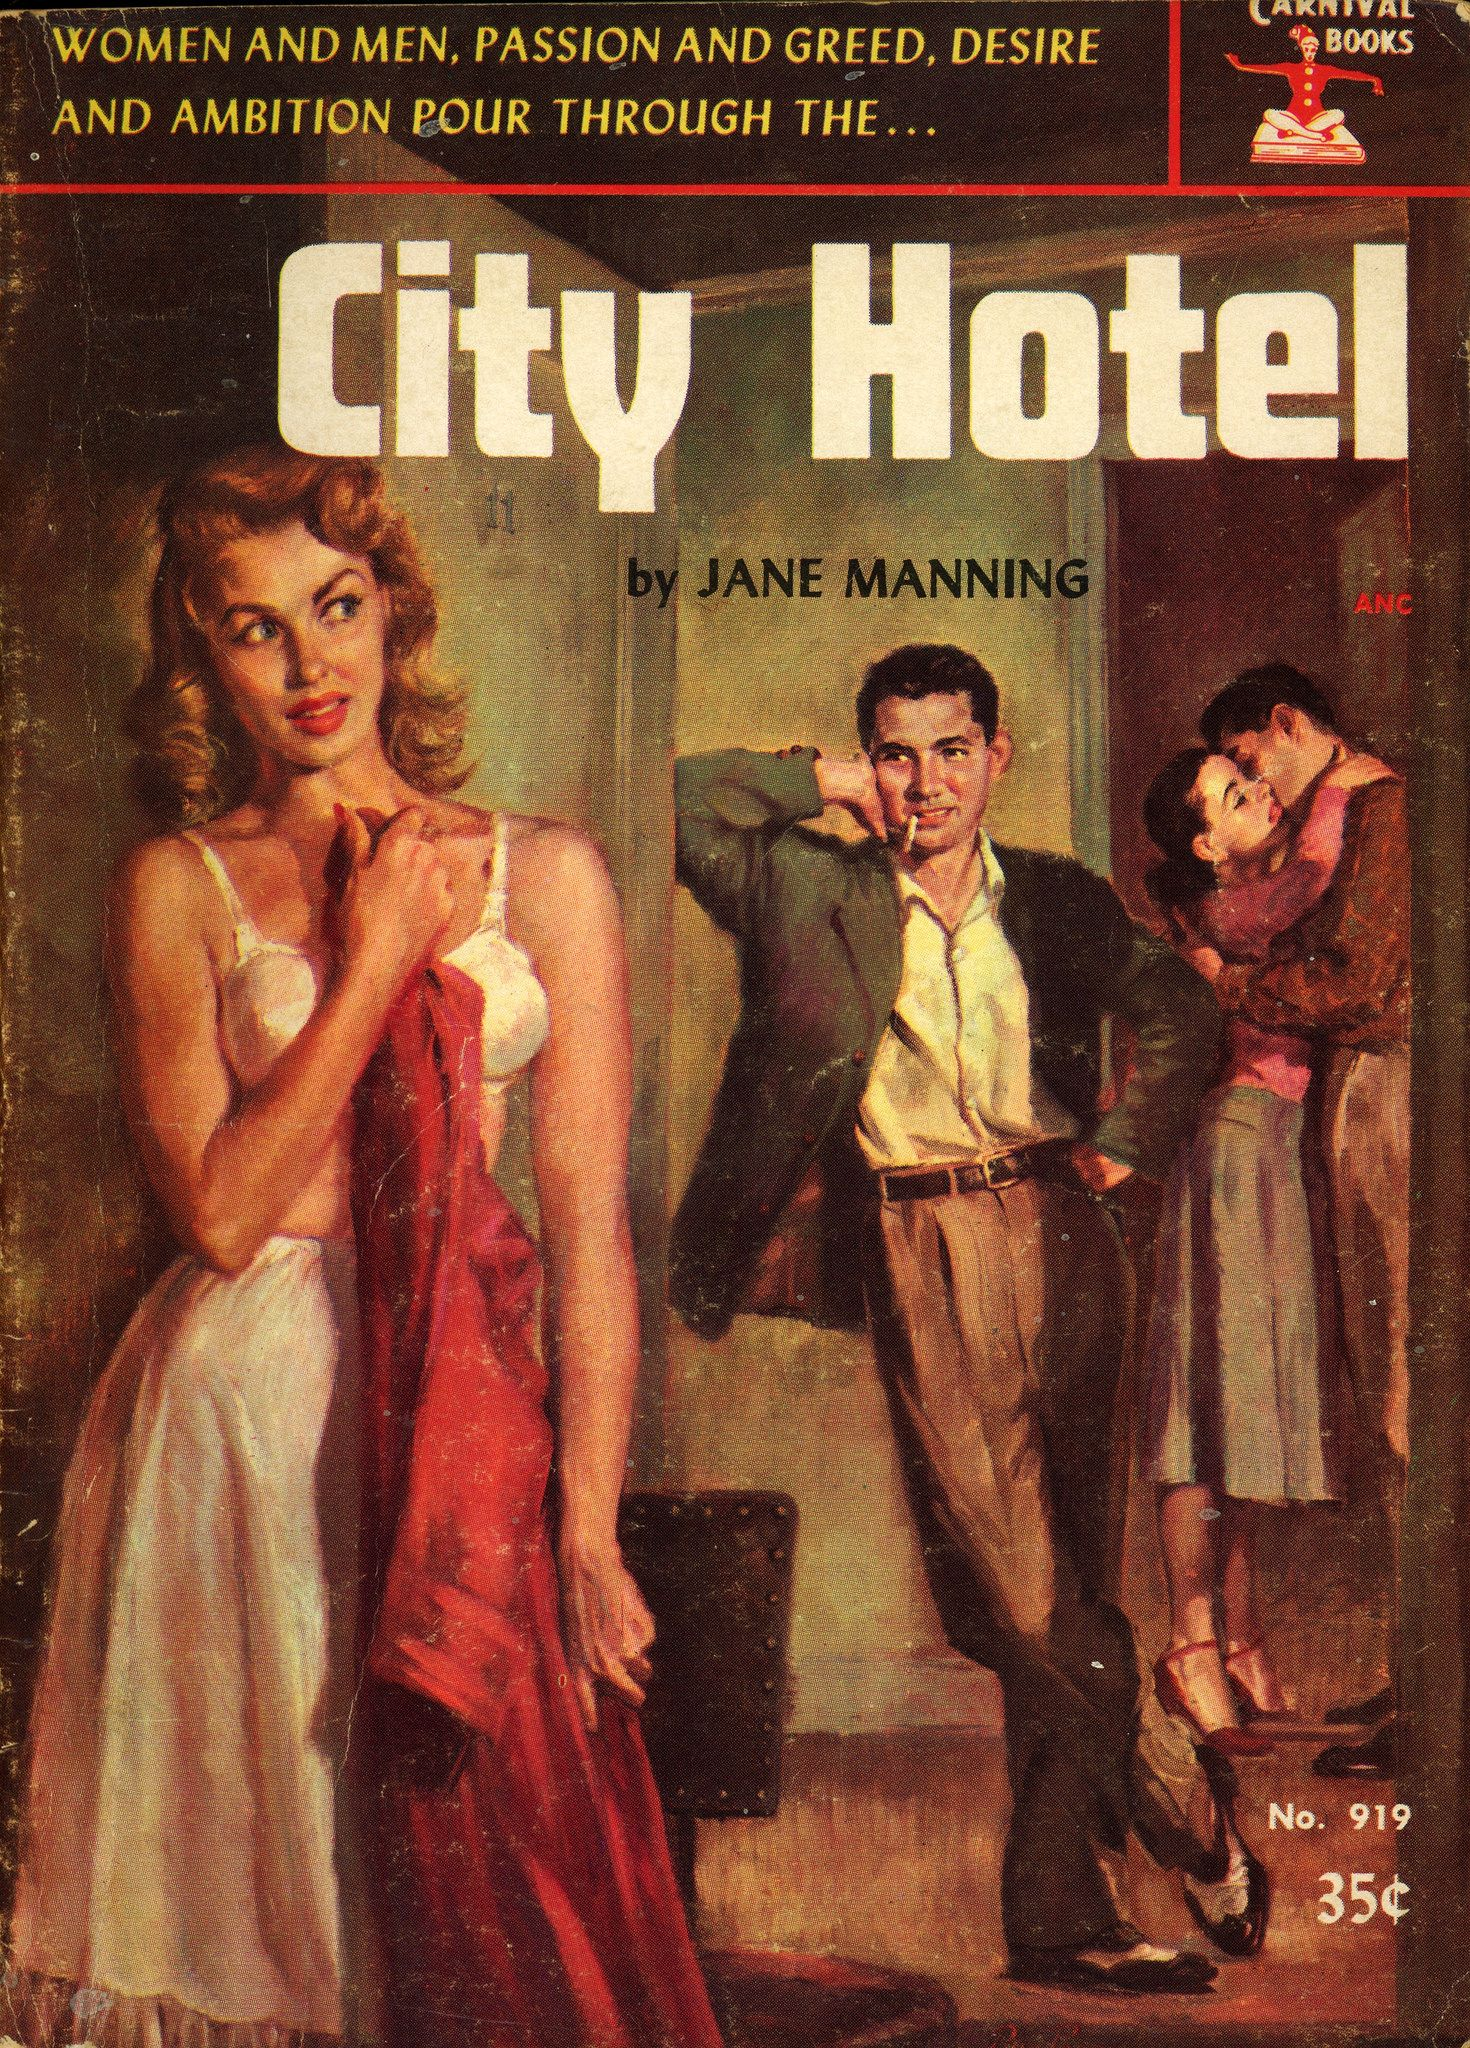 Women And Men, Passion And Greed, Desire And Ambition Pour Through The... City Hotel viavia